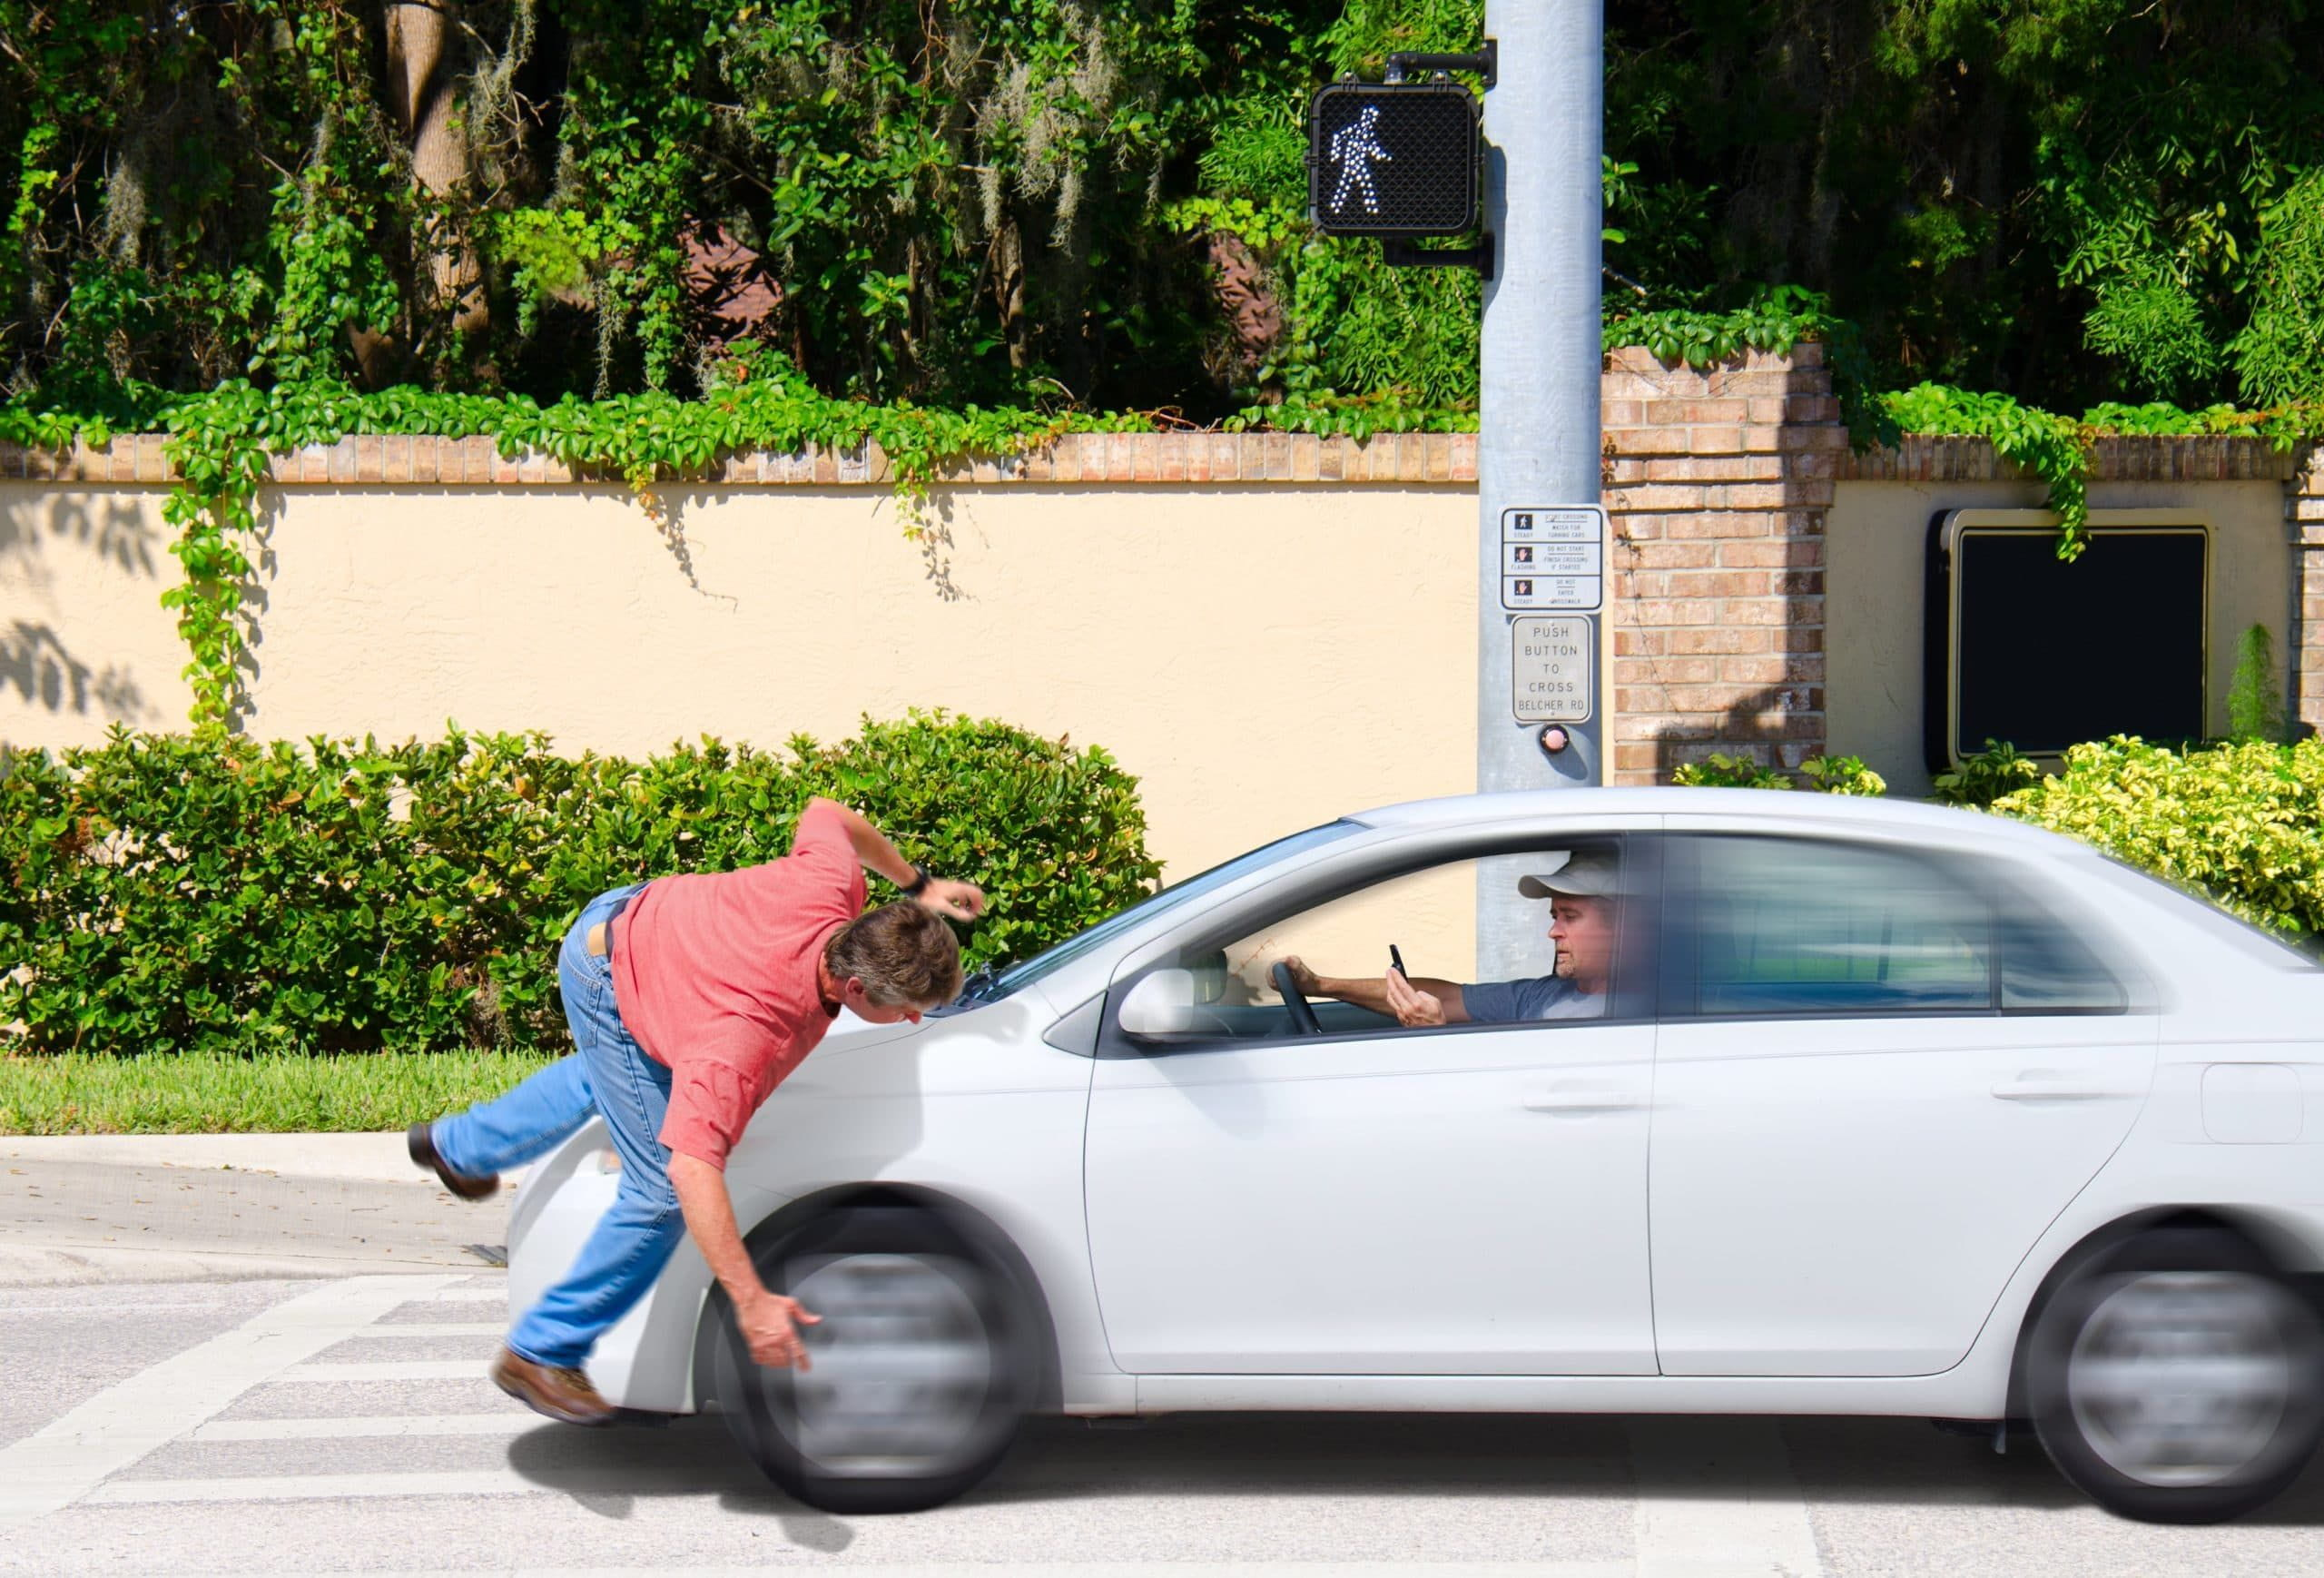 Distracted driver hit a man walking in pedestrian lane.